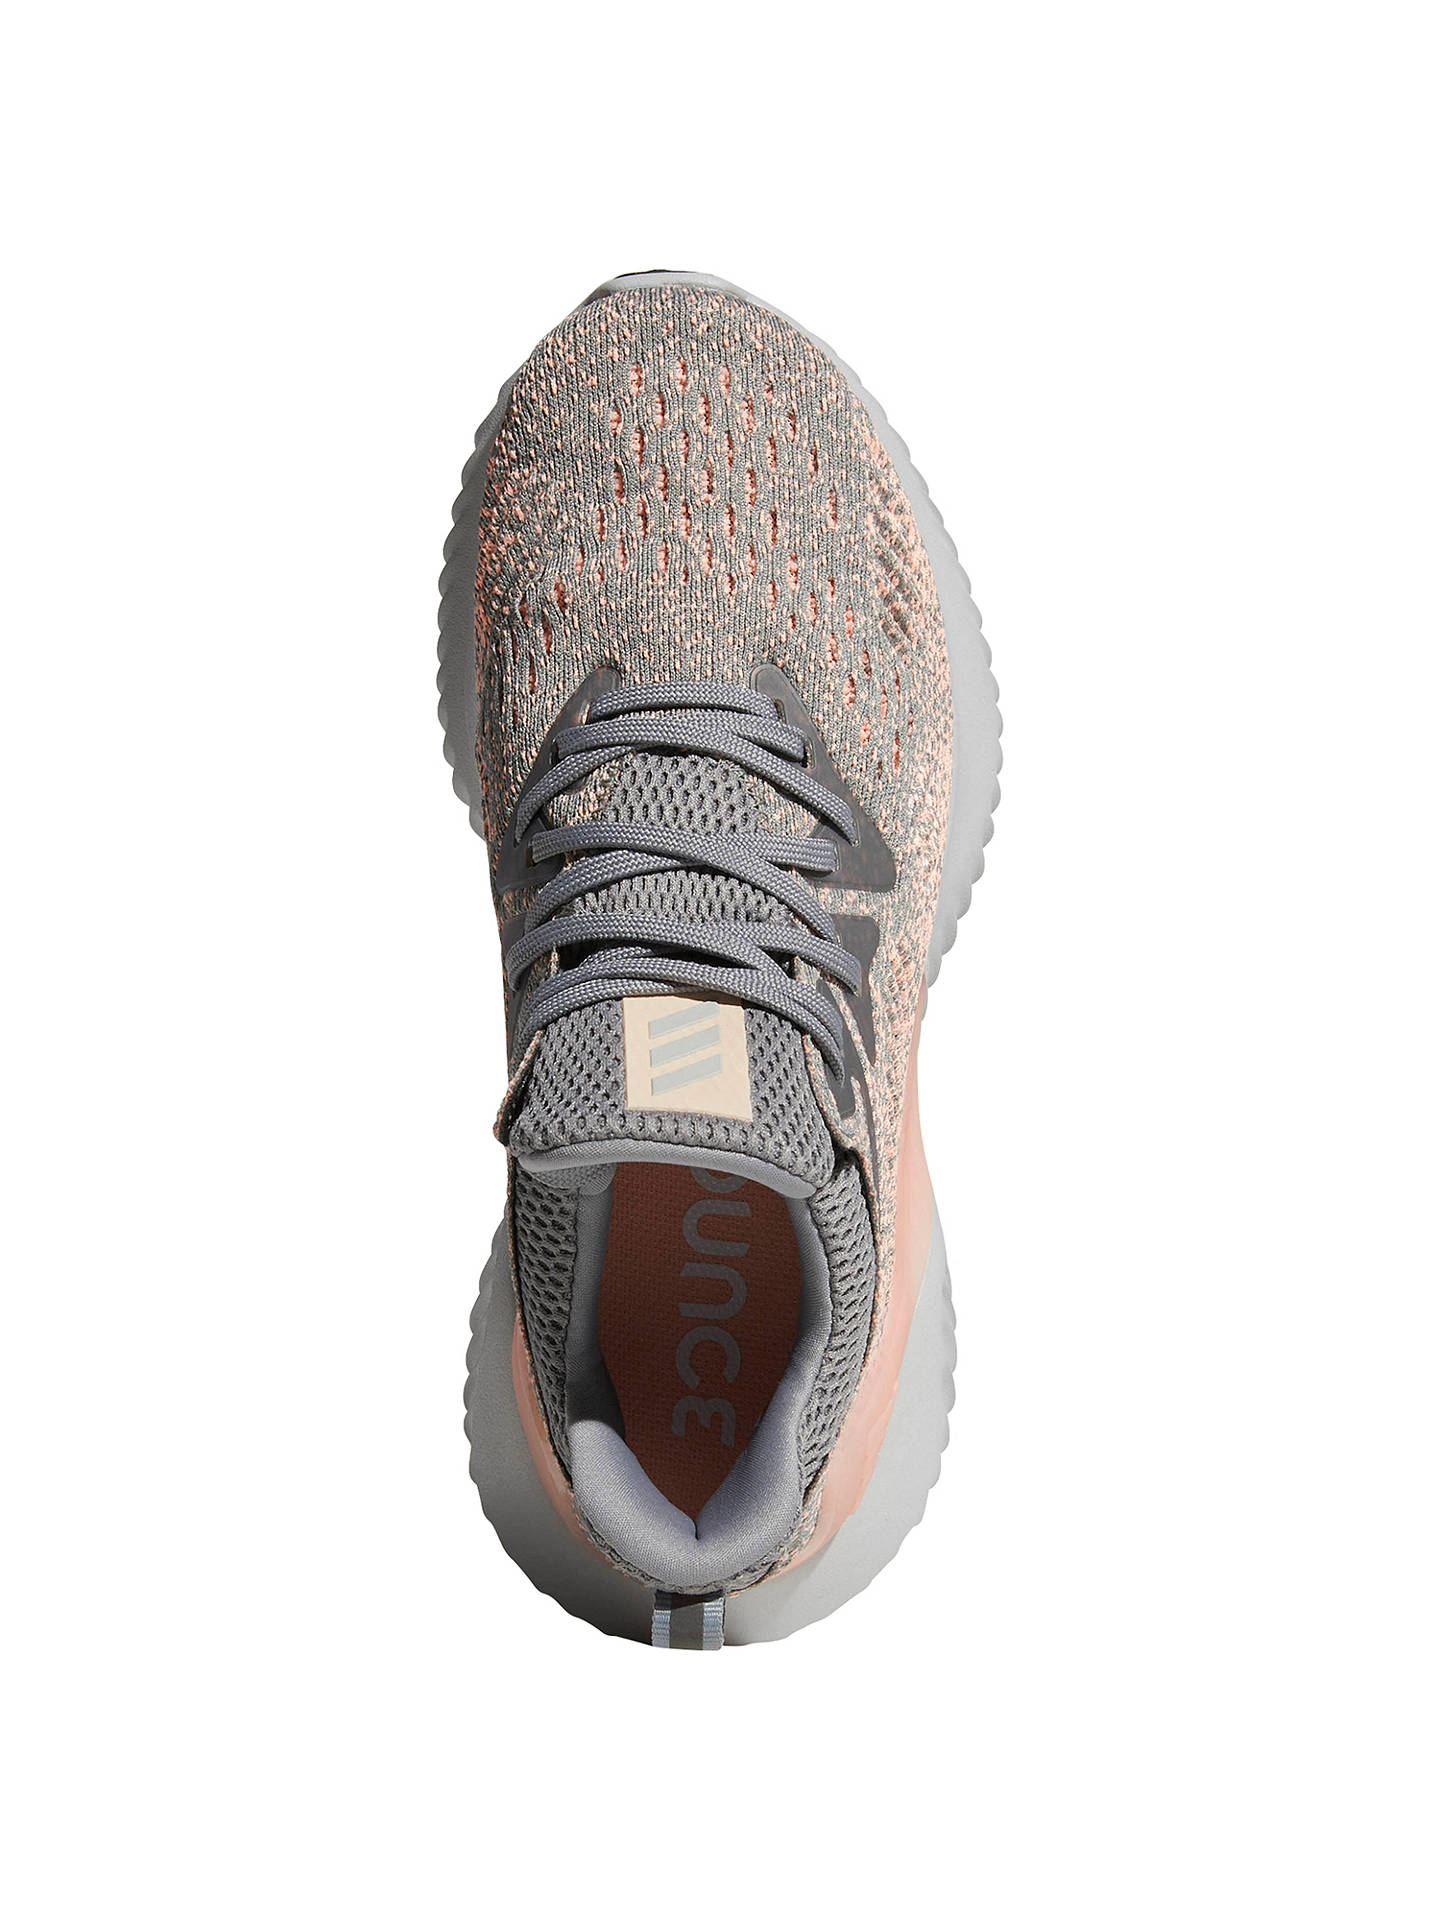 Buy adidas Alphabounce Beyond Women's Running Shoes, Grey/Clear Orange, 4 Online at johnlewis.com